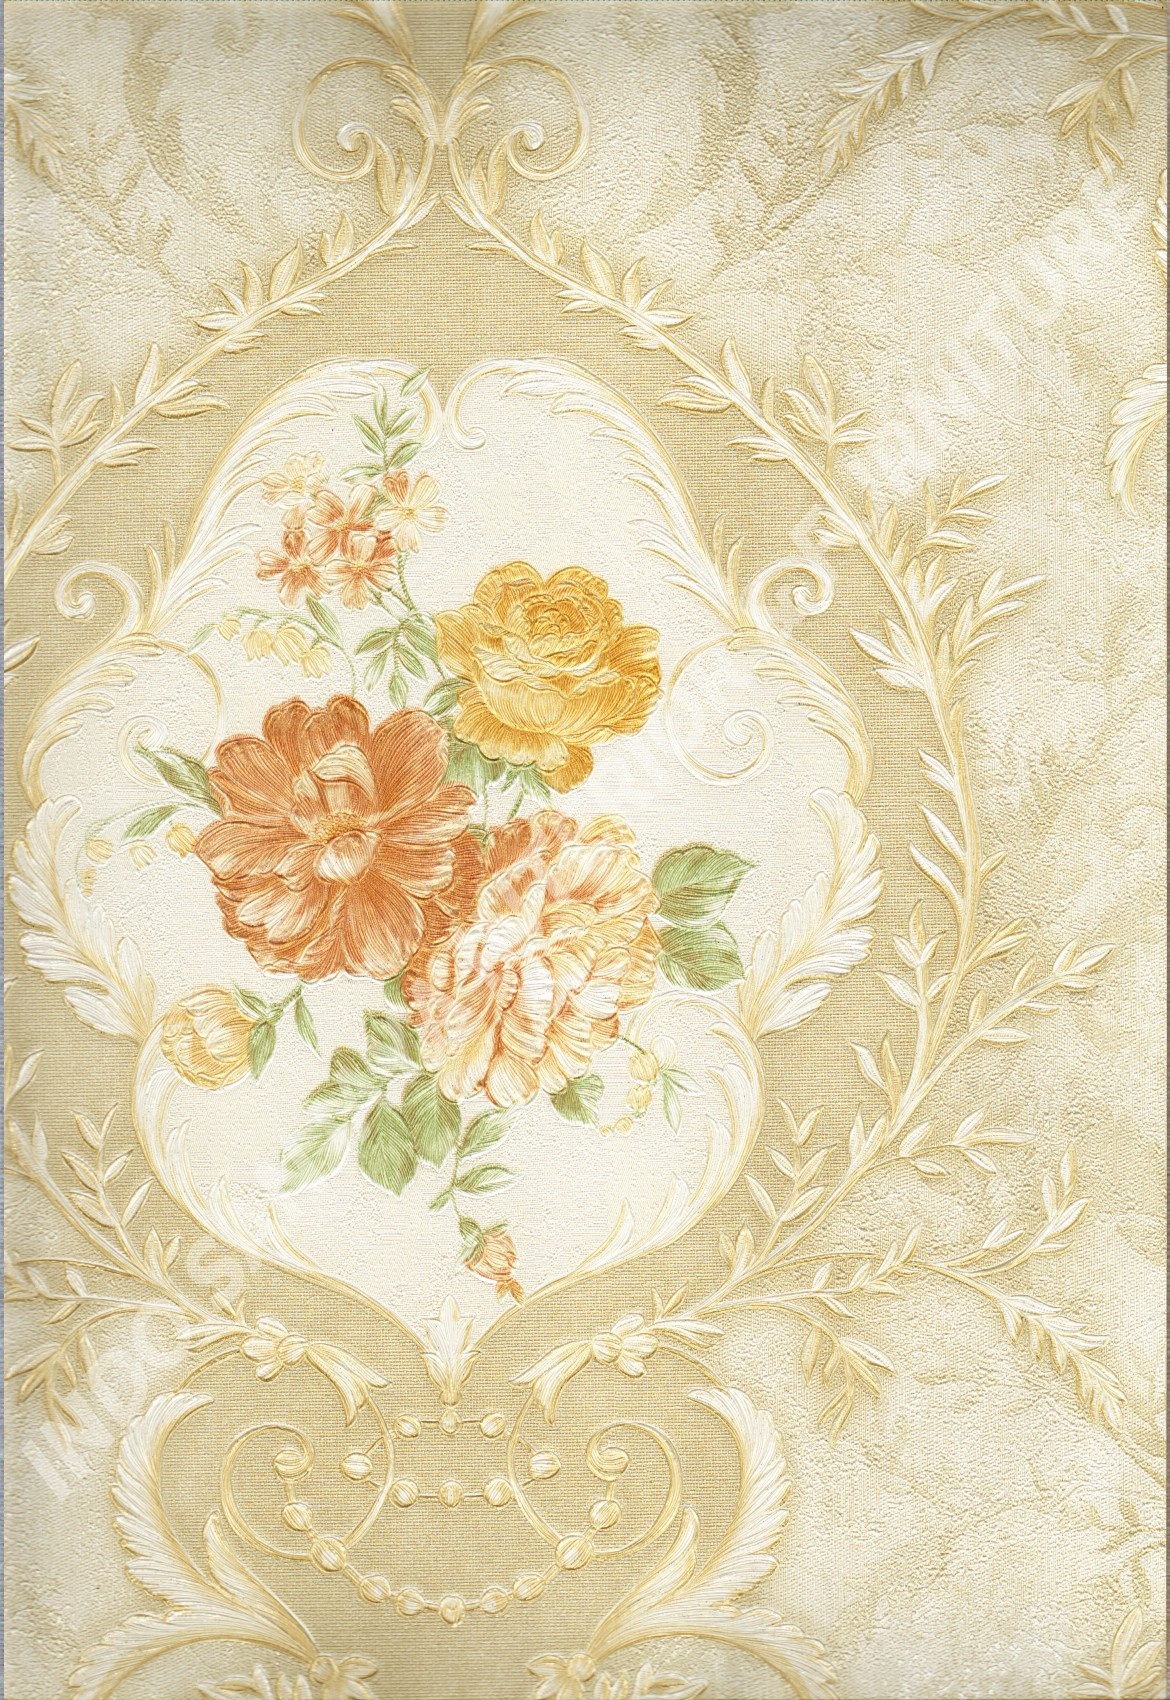 wallpaper   Wallpaper Bunga DL10501:DL10501 corak  warna